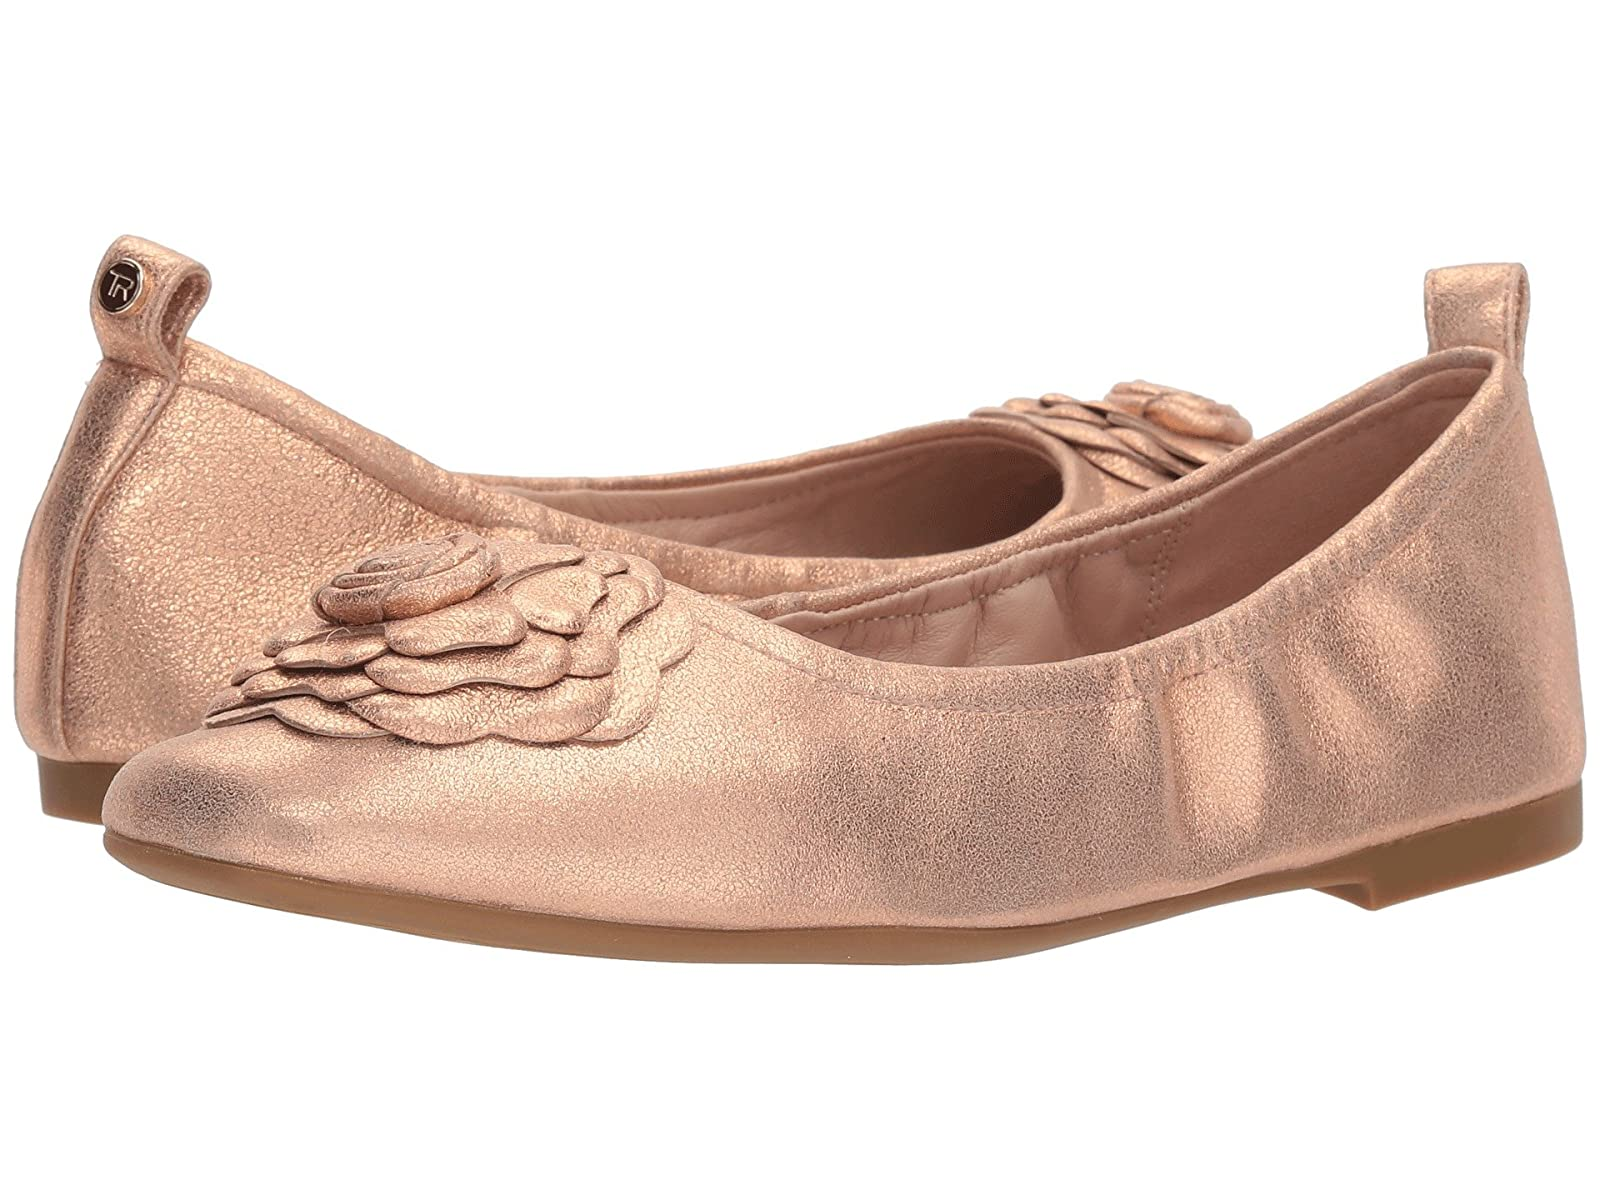 Taryn Rose RosalynAtmospheric grades have affordable shoes